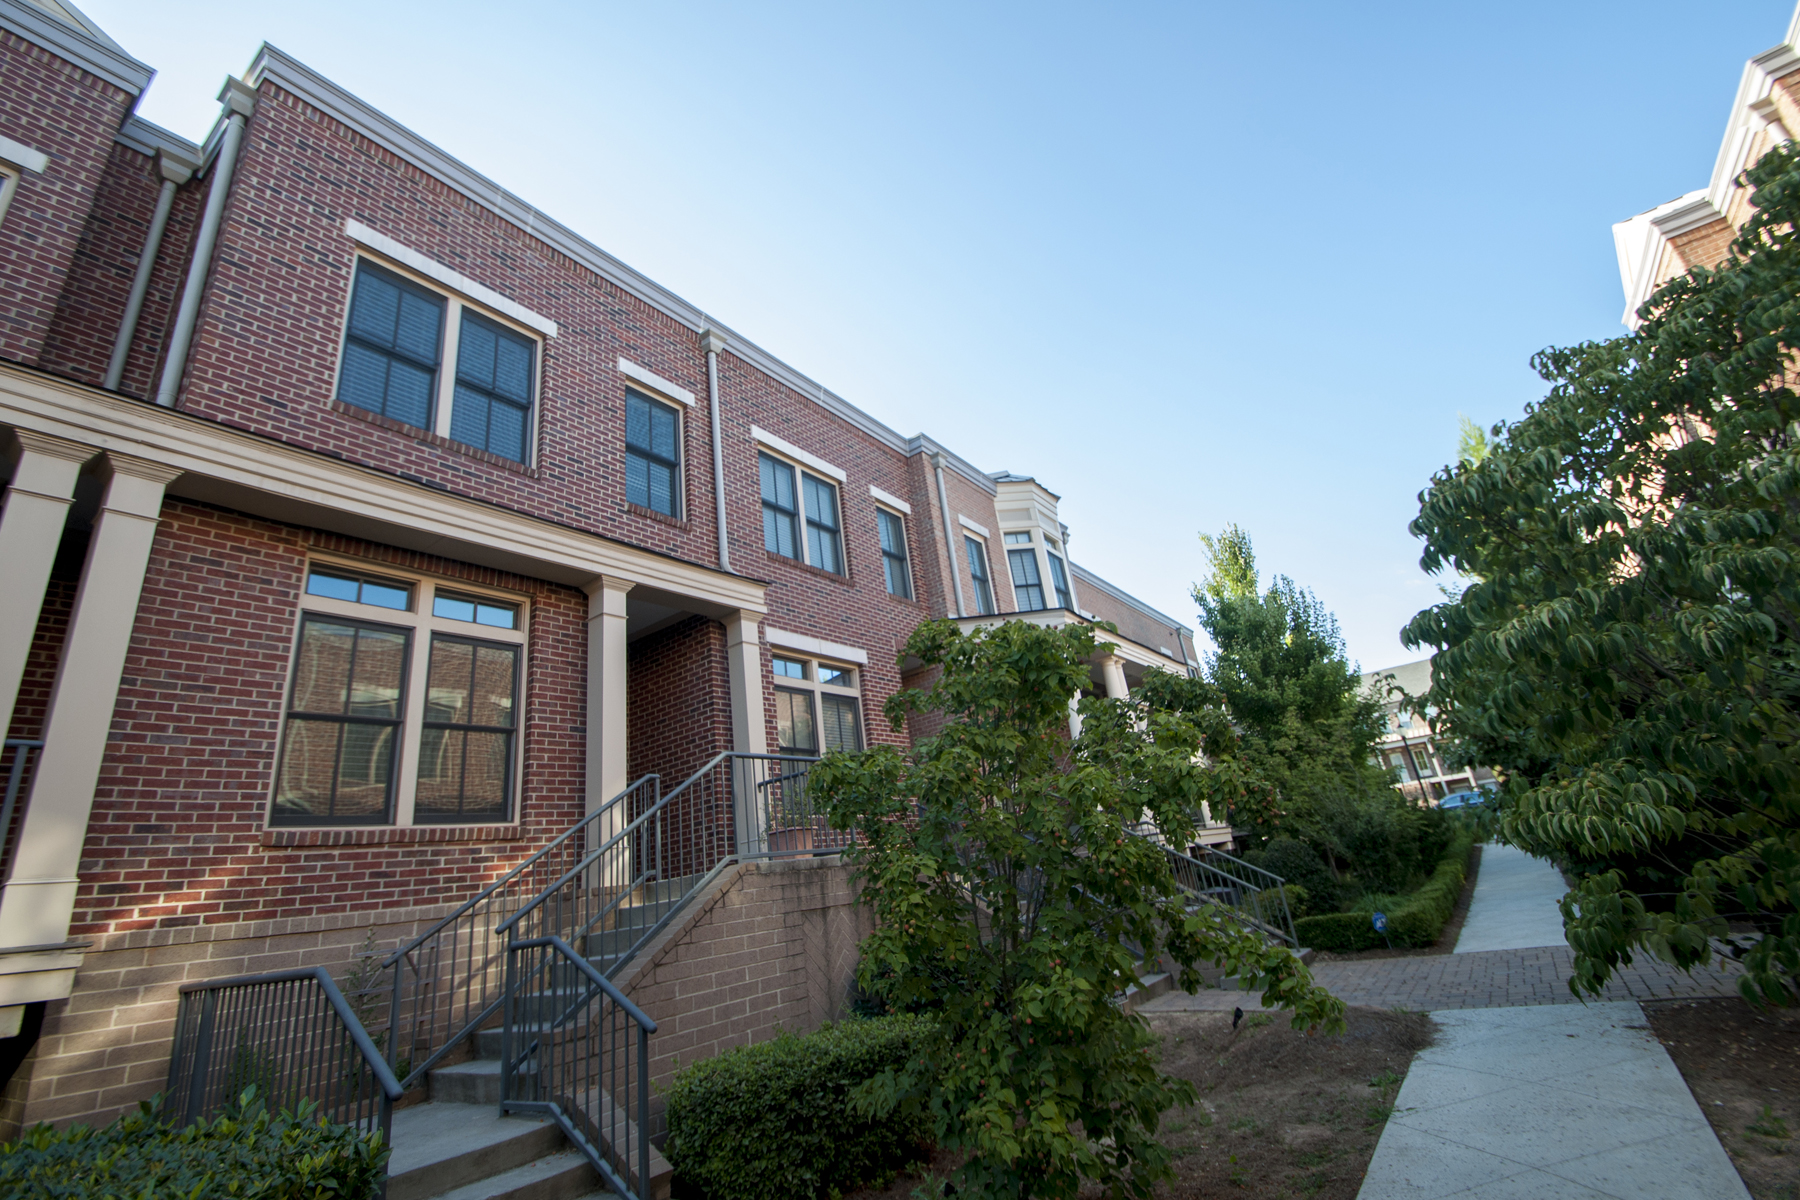 Villetta a schiera per Affitto alle ore Executive Townhome For Lease In Dunwoody 4695 Dogwood Alley Dunwoody, Georgia 30338 Stati Uniti